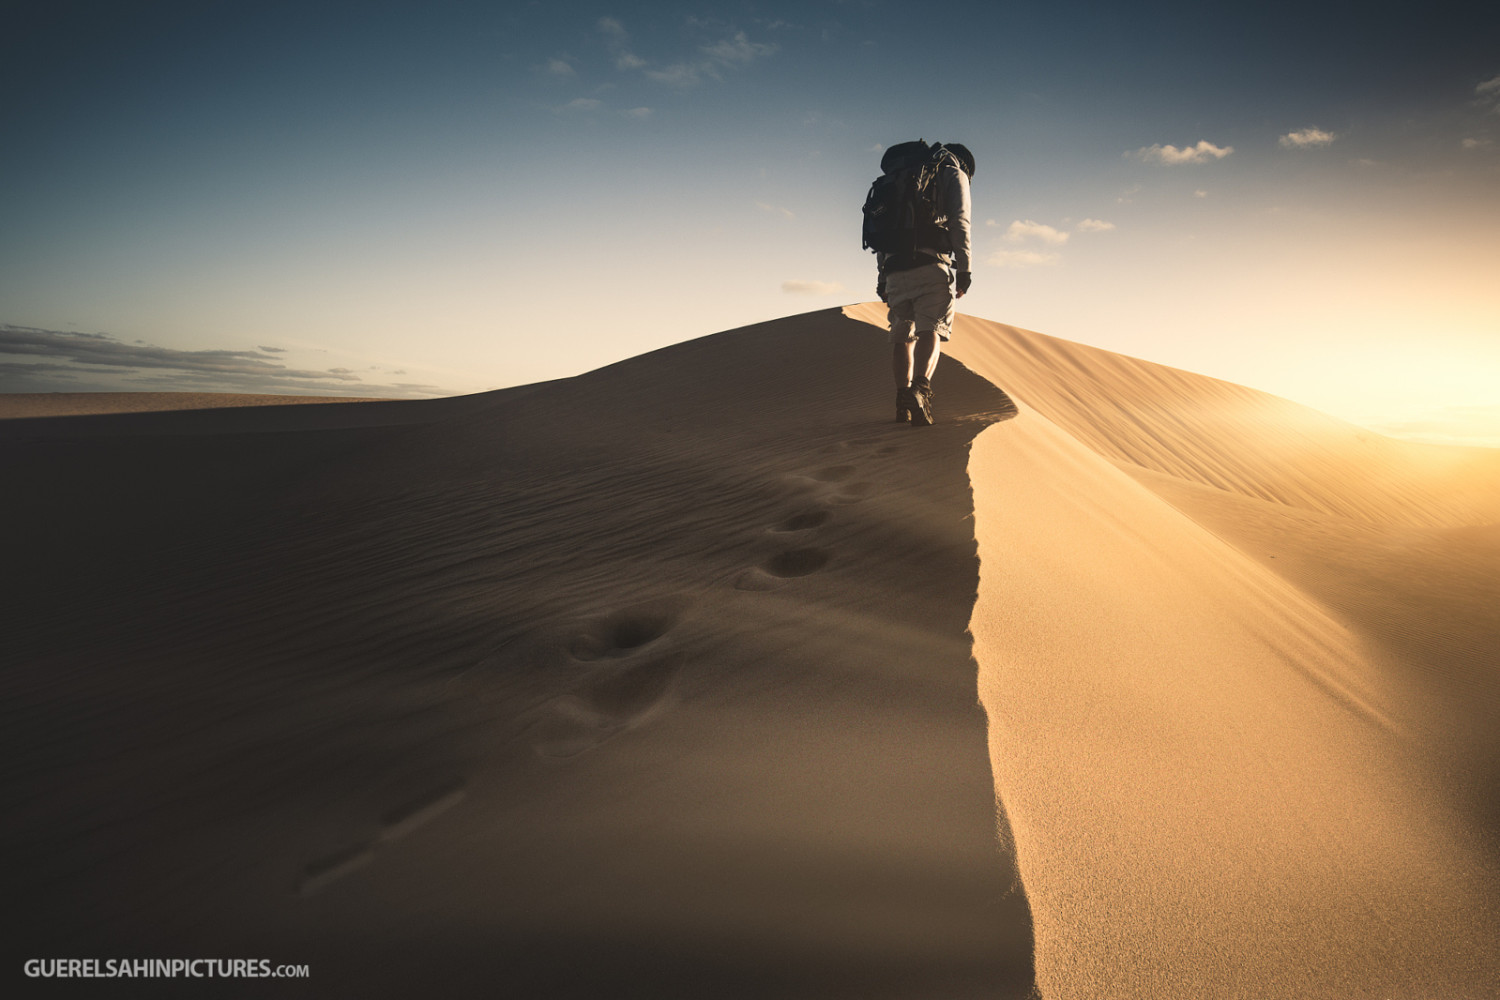 Guerel Sahin's Photos Will Turn Your Wanderlust Up to 11